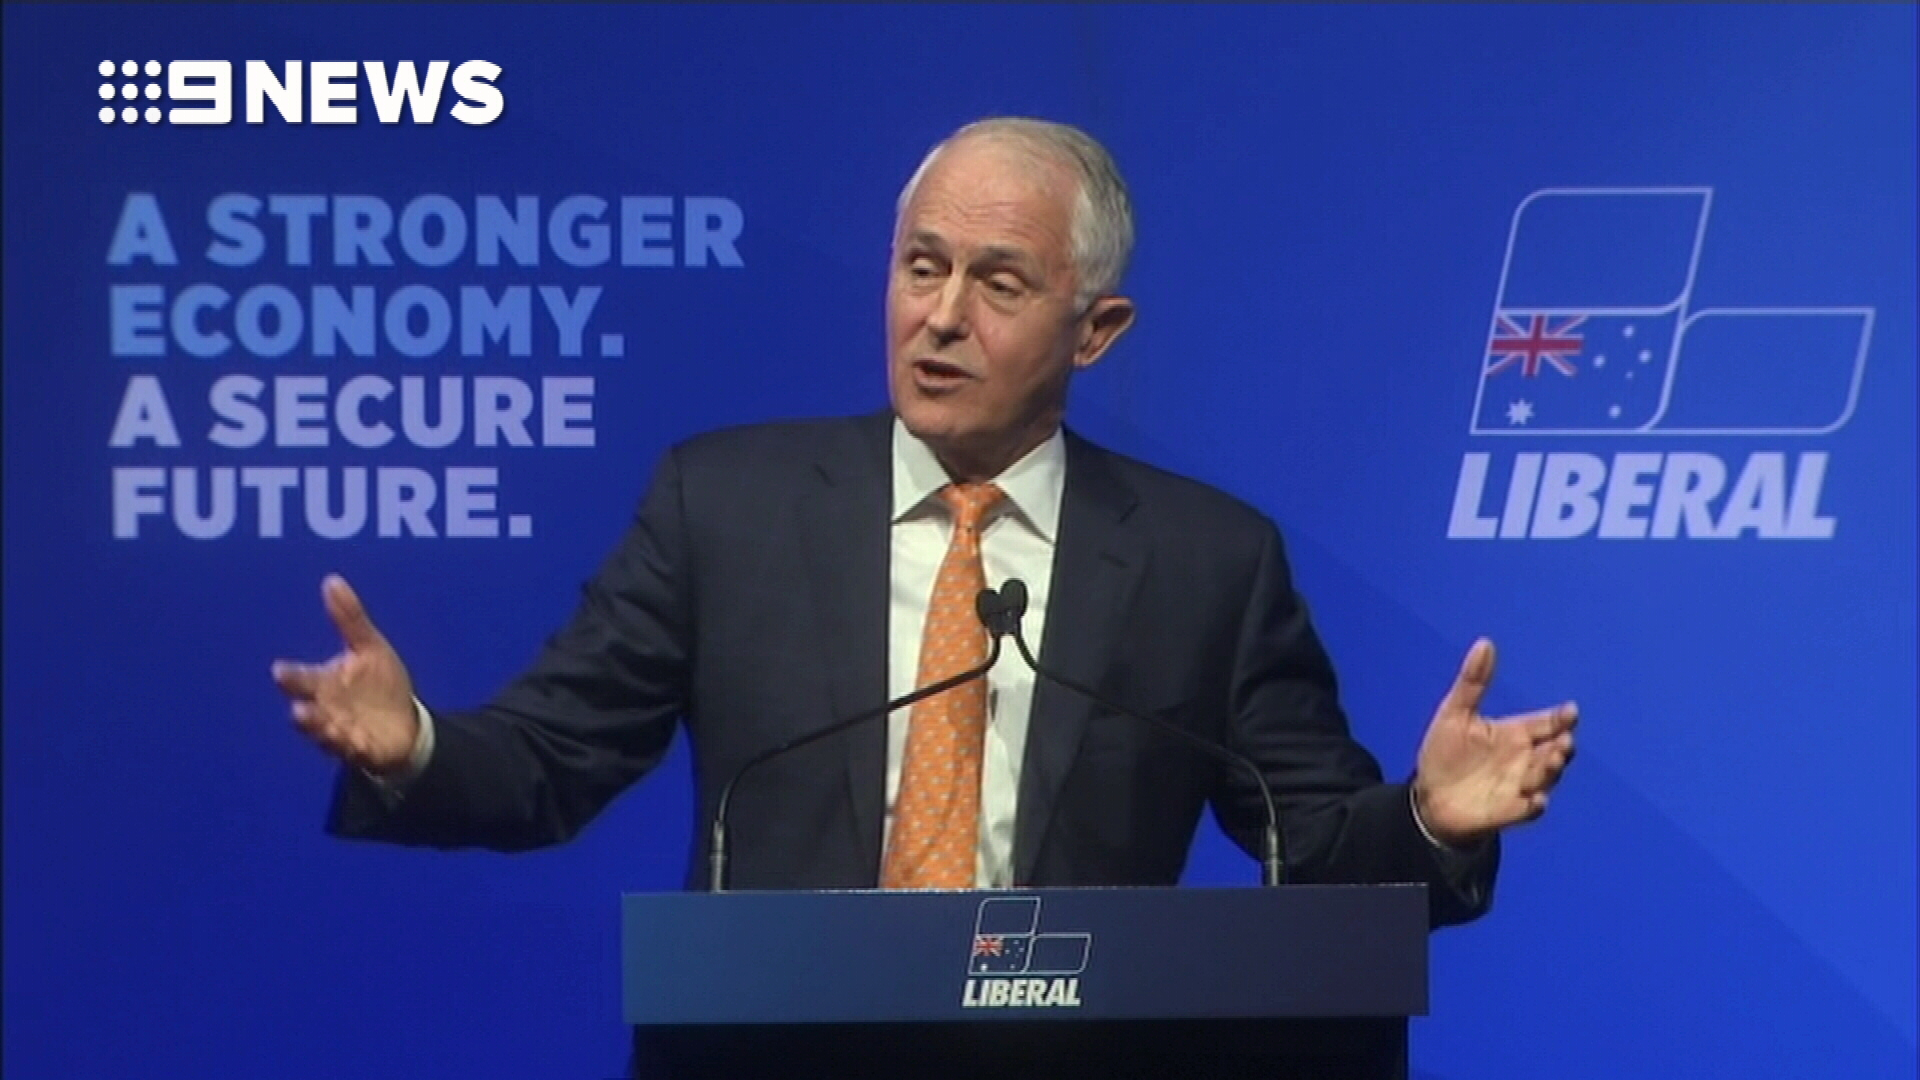 Turnbull's support at highest level since election